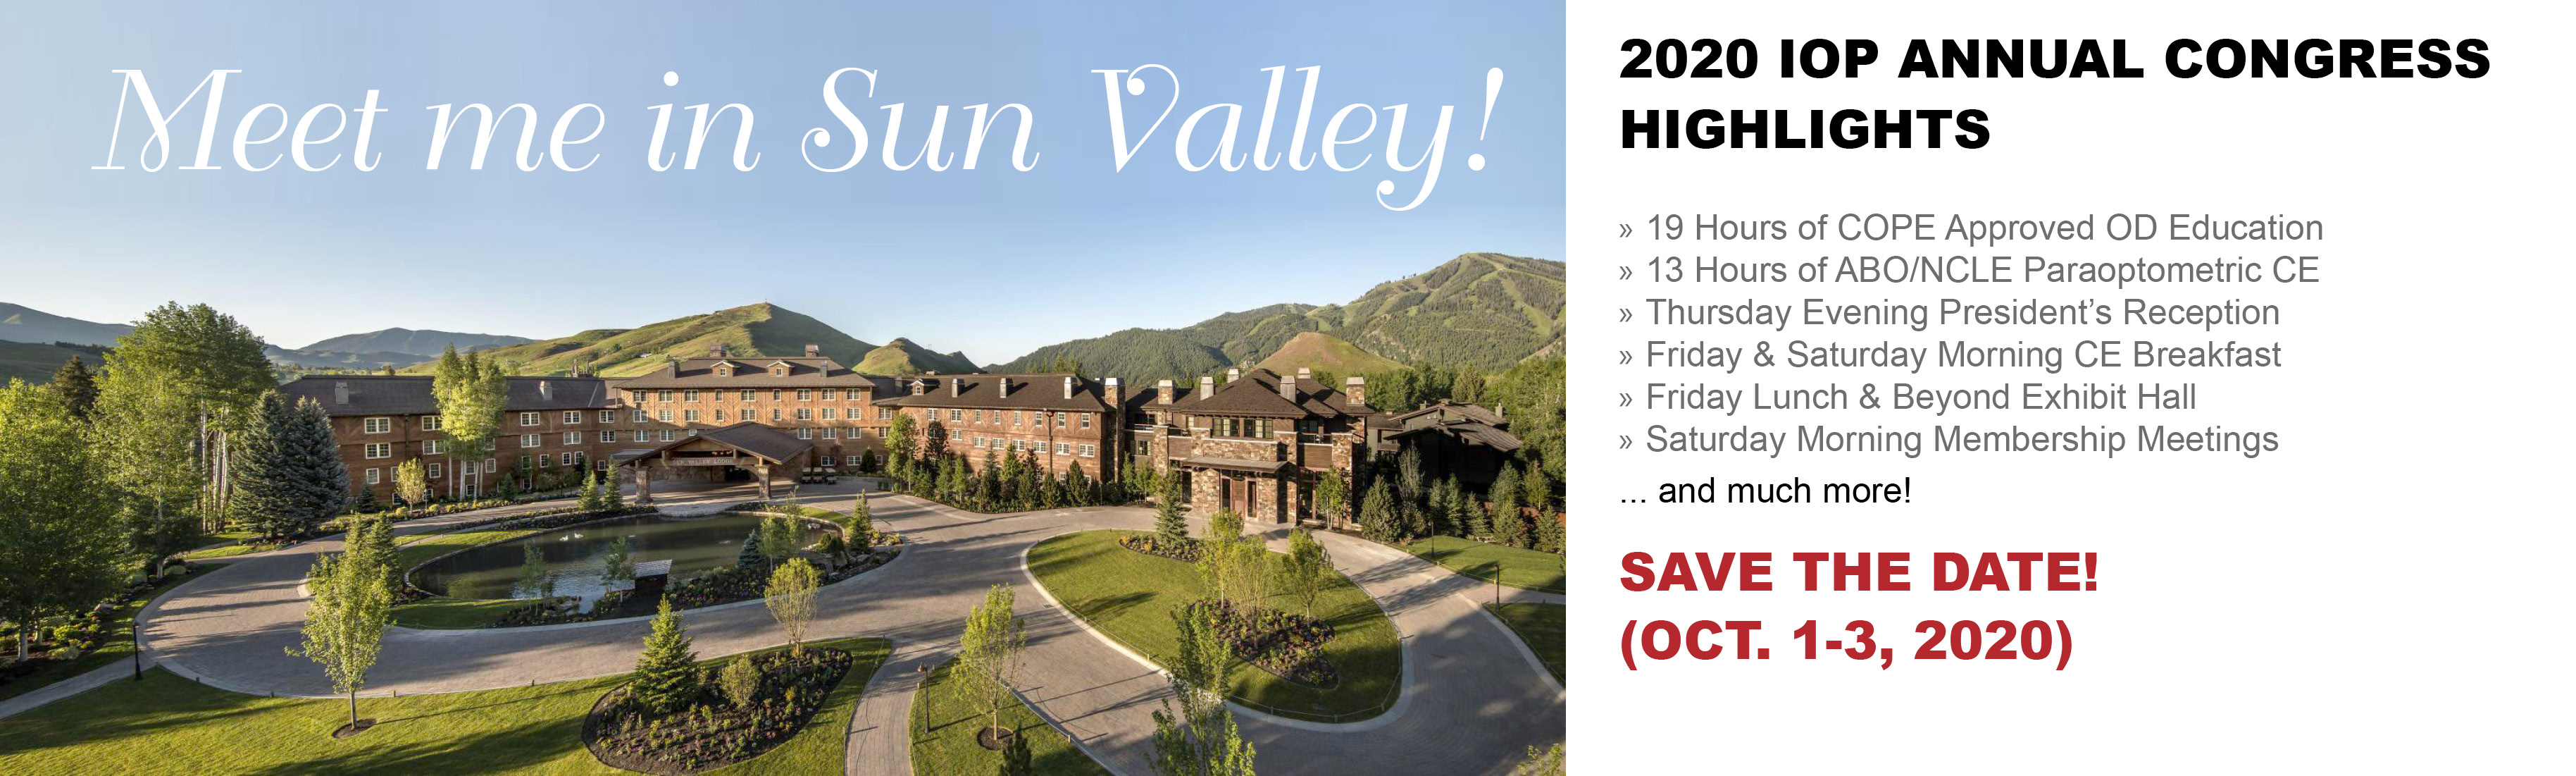 SAVE the DATE: 2020-Oct 1-3 Annual Congress-Sun Valley